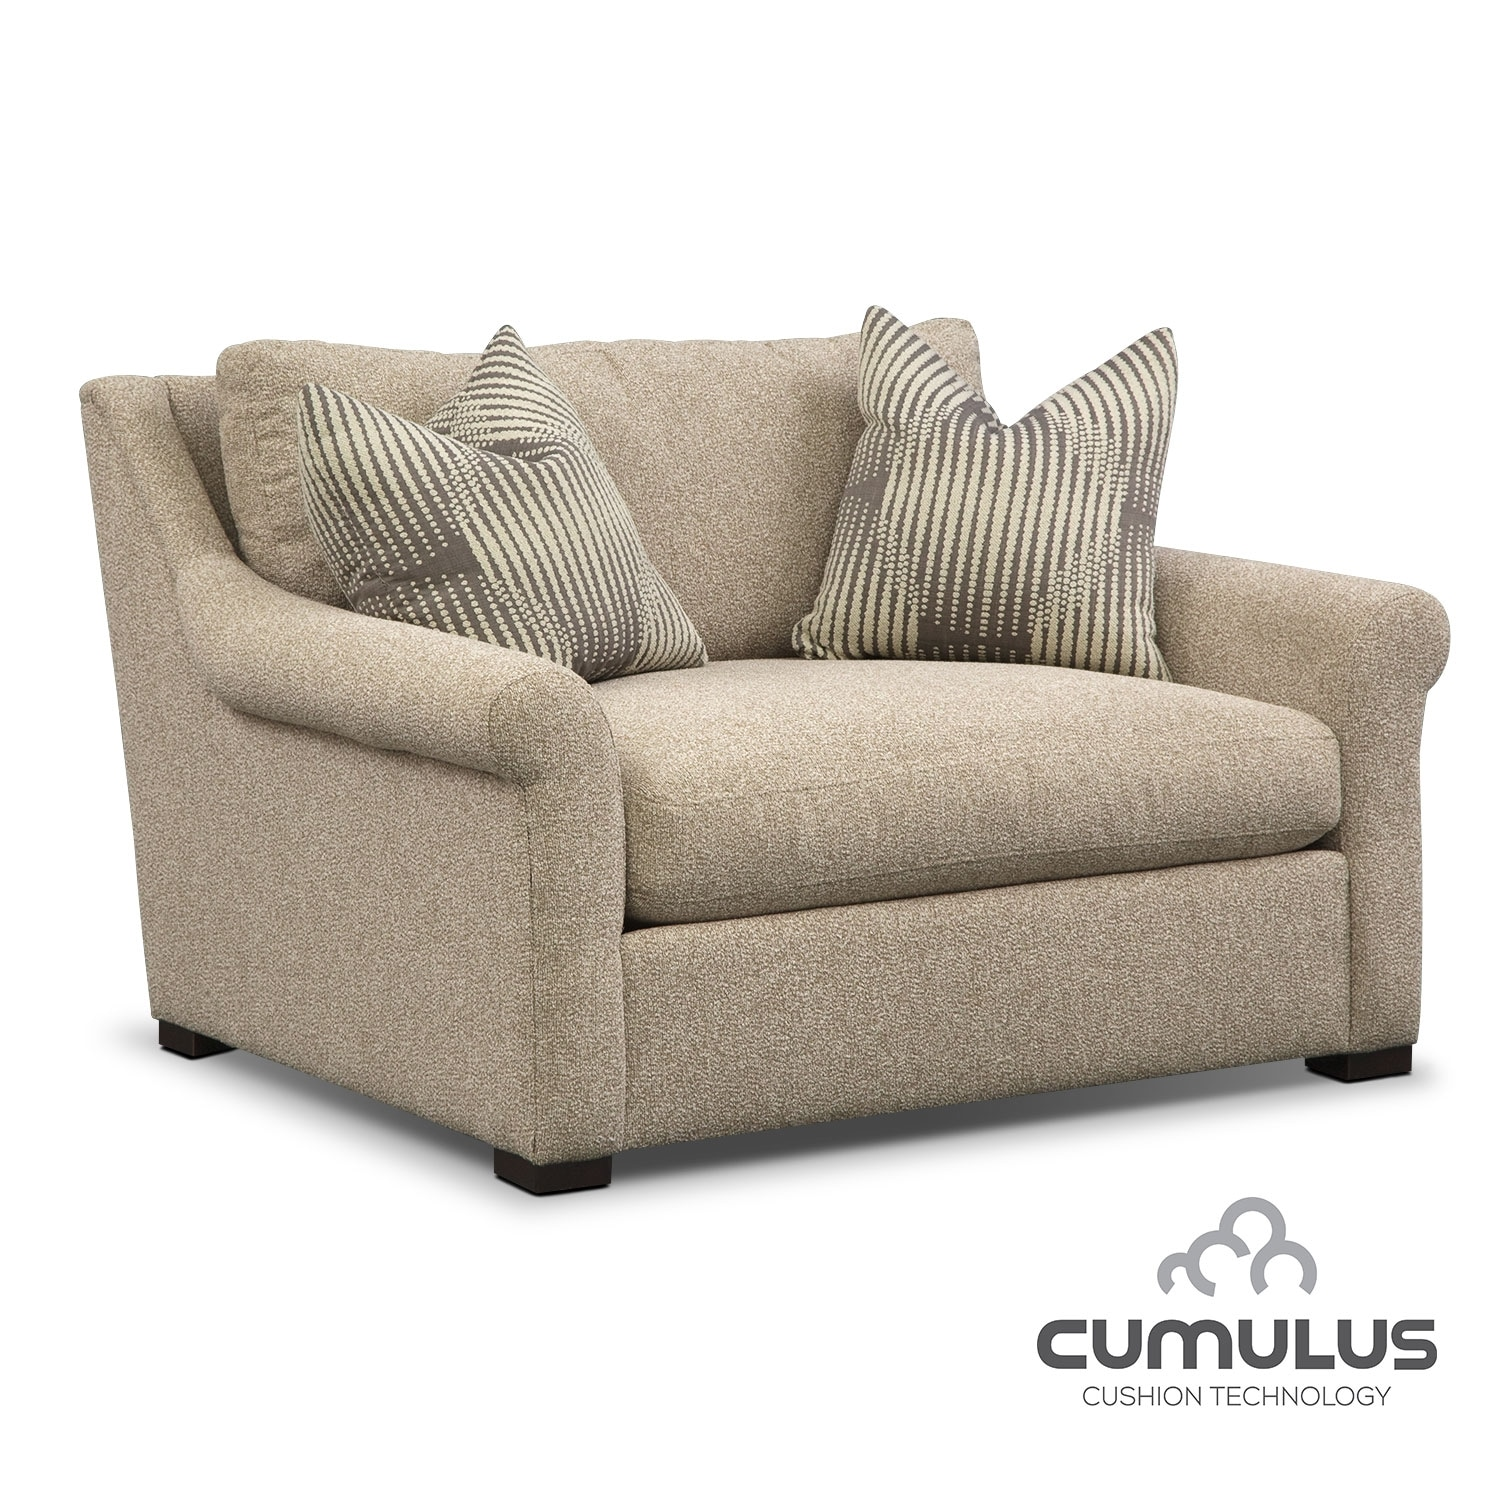 Living Room Furniture - Robertson Cumulus Chair and a Half - Beige